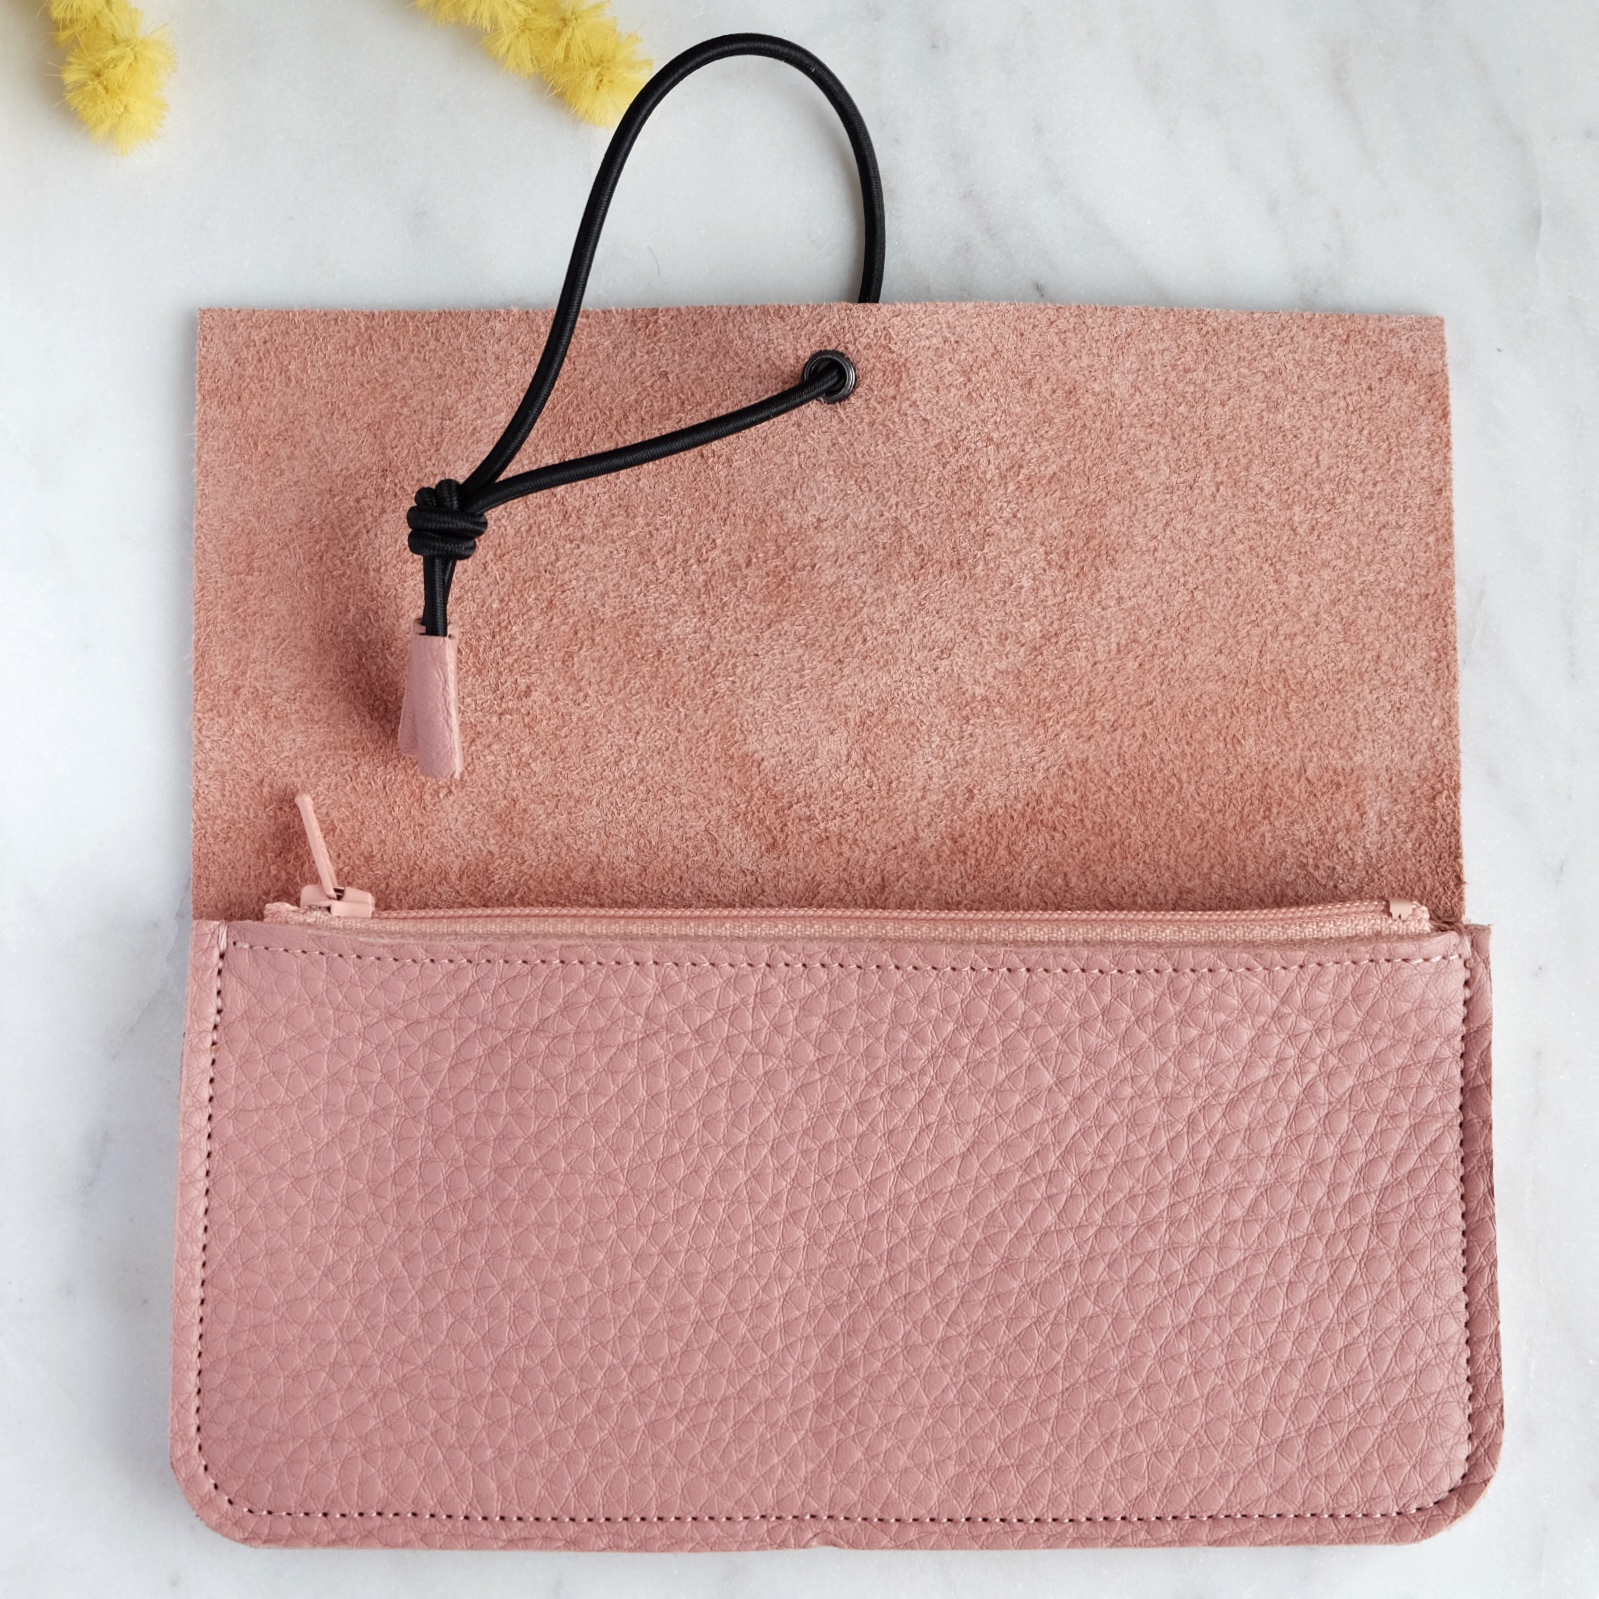 MONEDERO DUSTY PINK GRANDE 2 MISHA BARCELONA